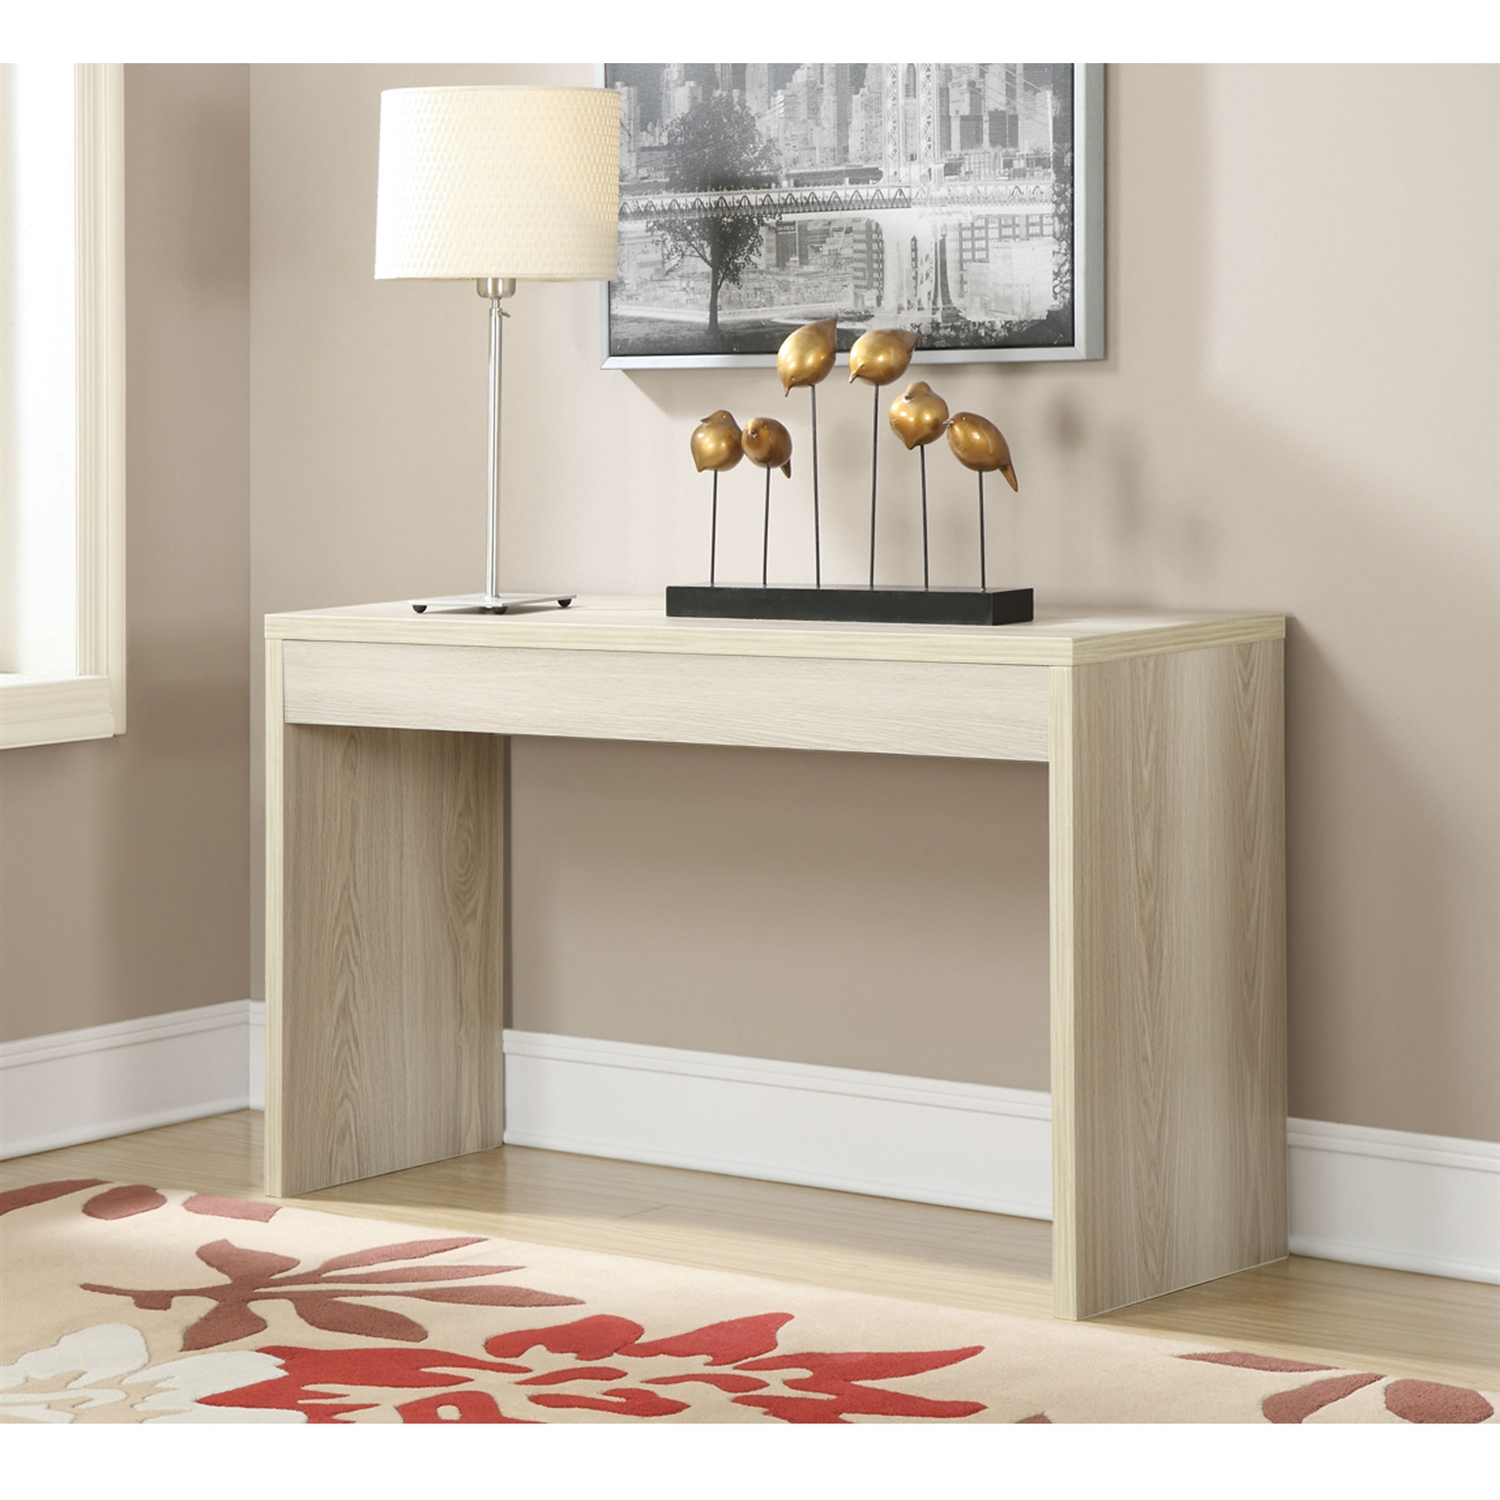 Contemporary Sofa Table Console Table In Weathered White Wood Finish Fastfurnishings Com